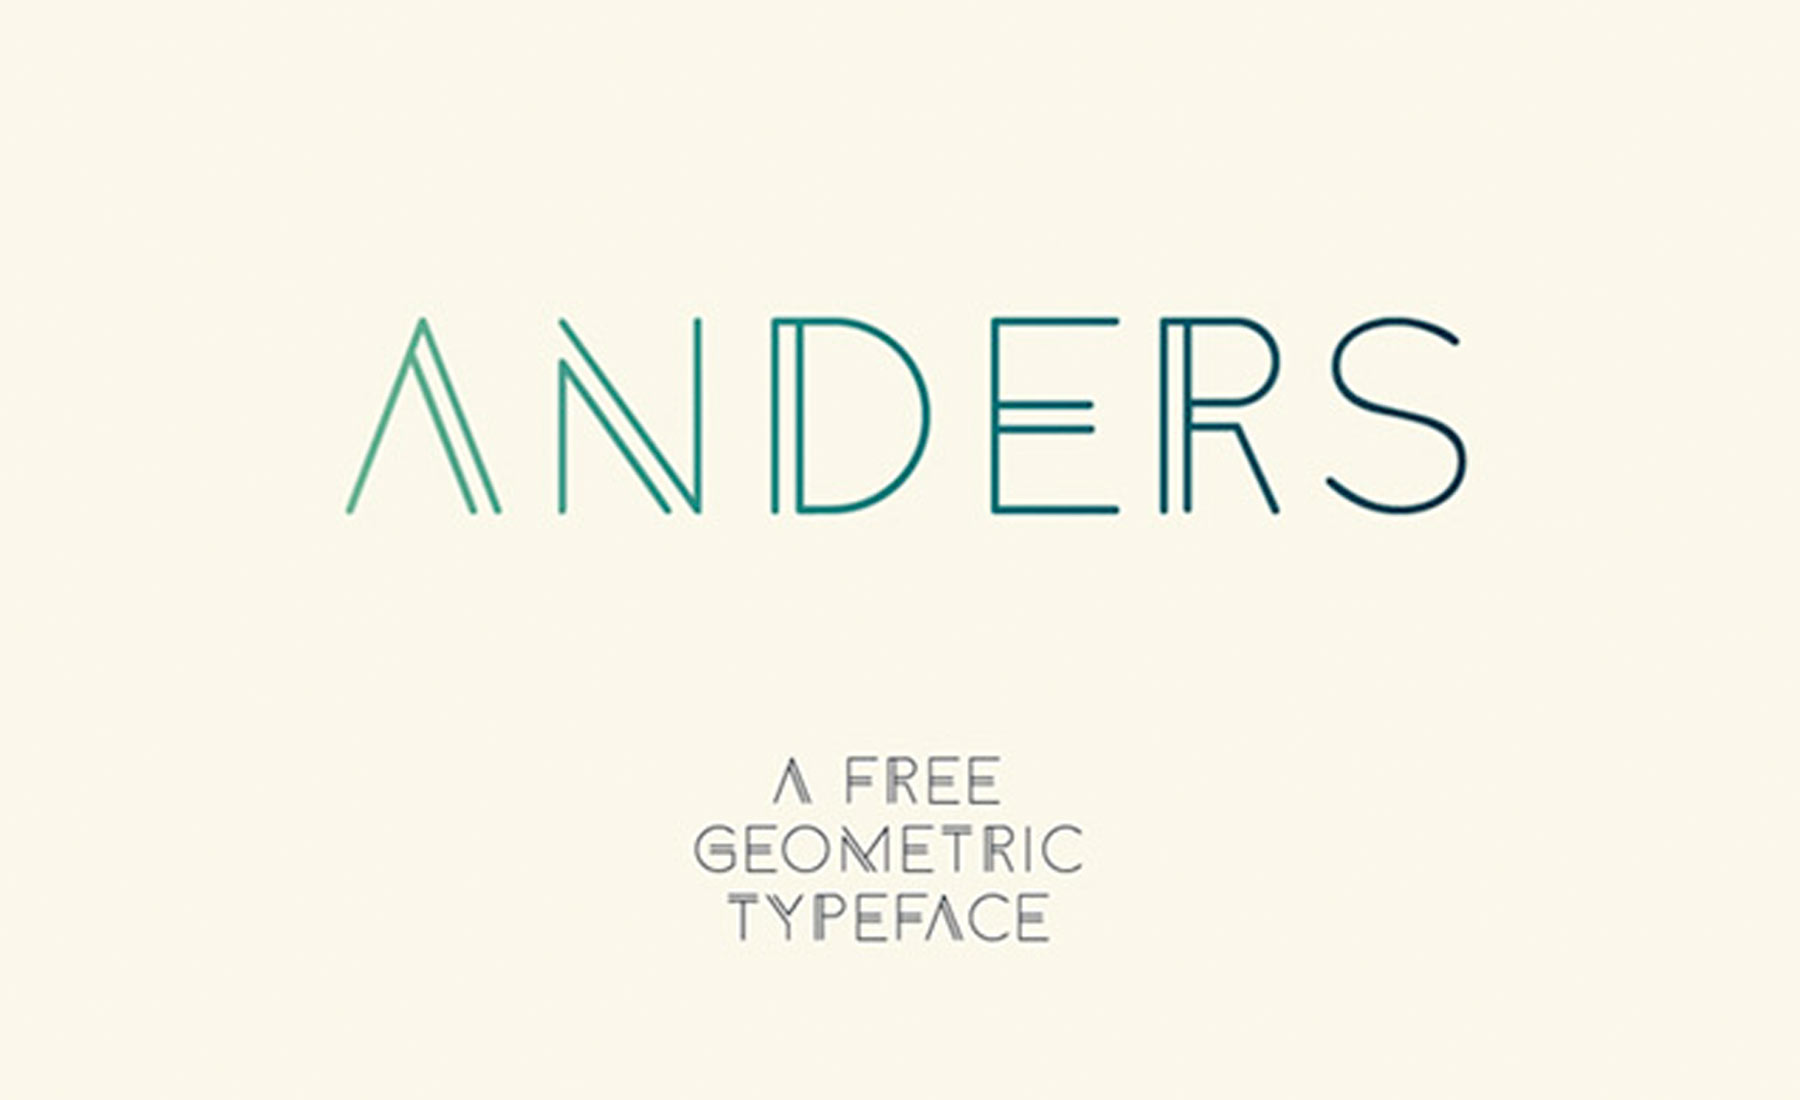 font-anders